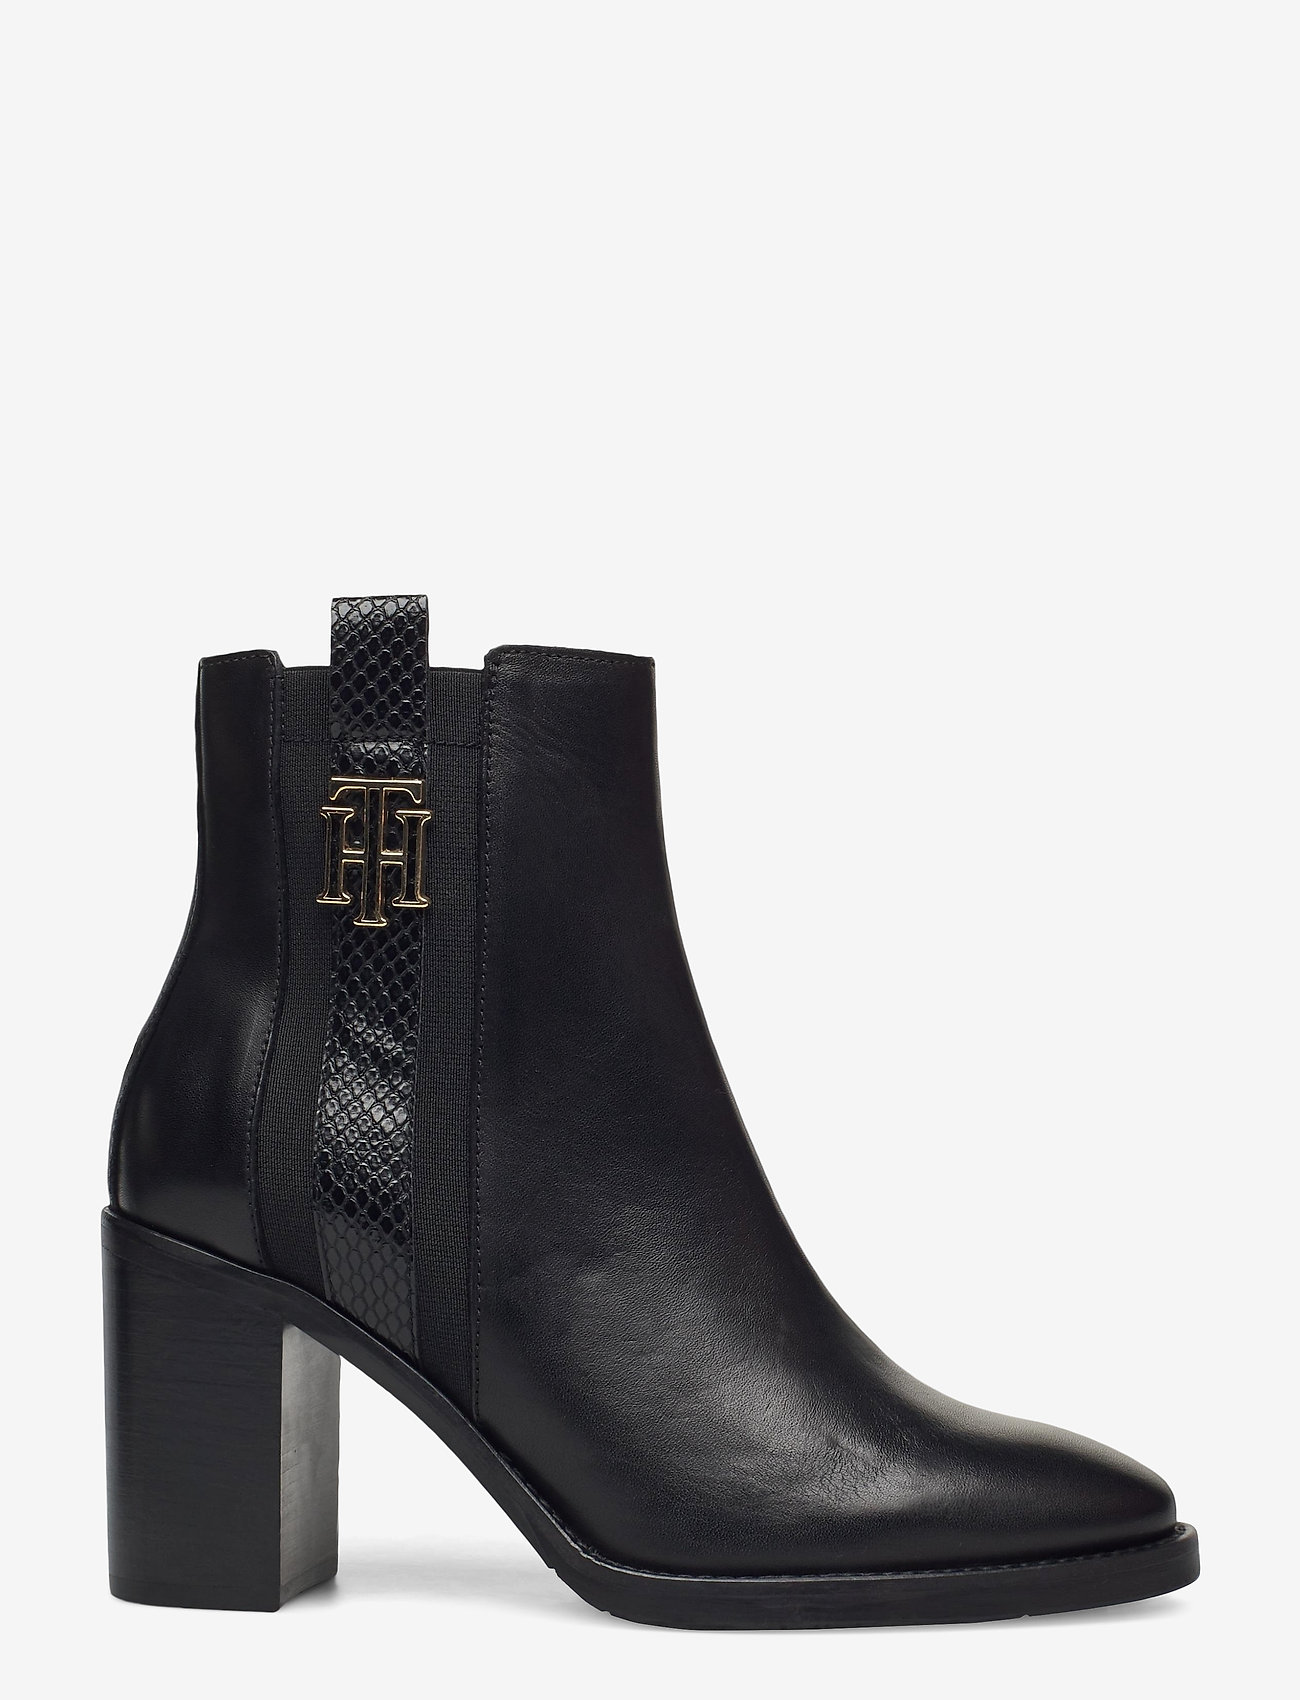 Tommy Hilfiger - TH INTERLOCK HIGH HEEL BOOT - heeled ankle boots - black - 1